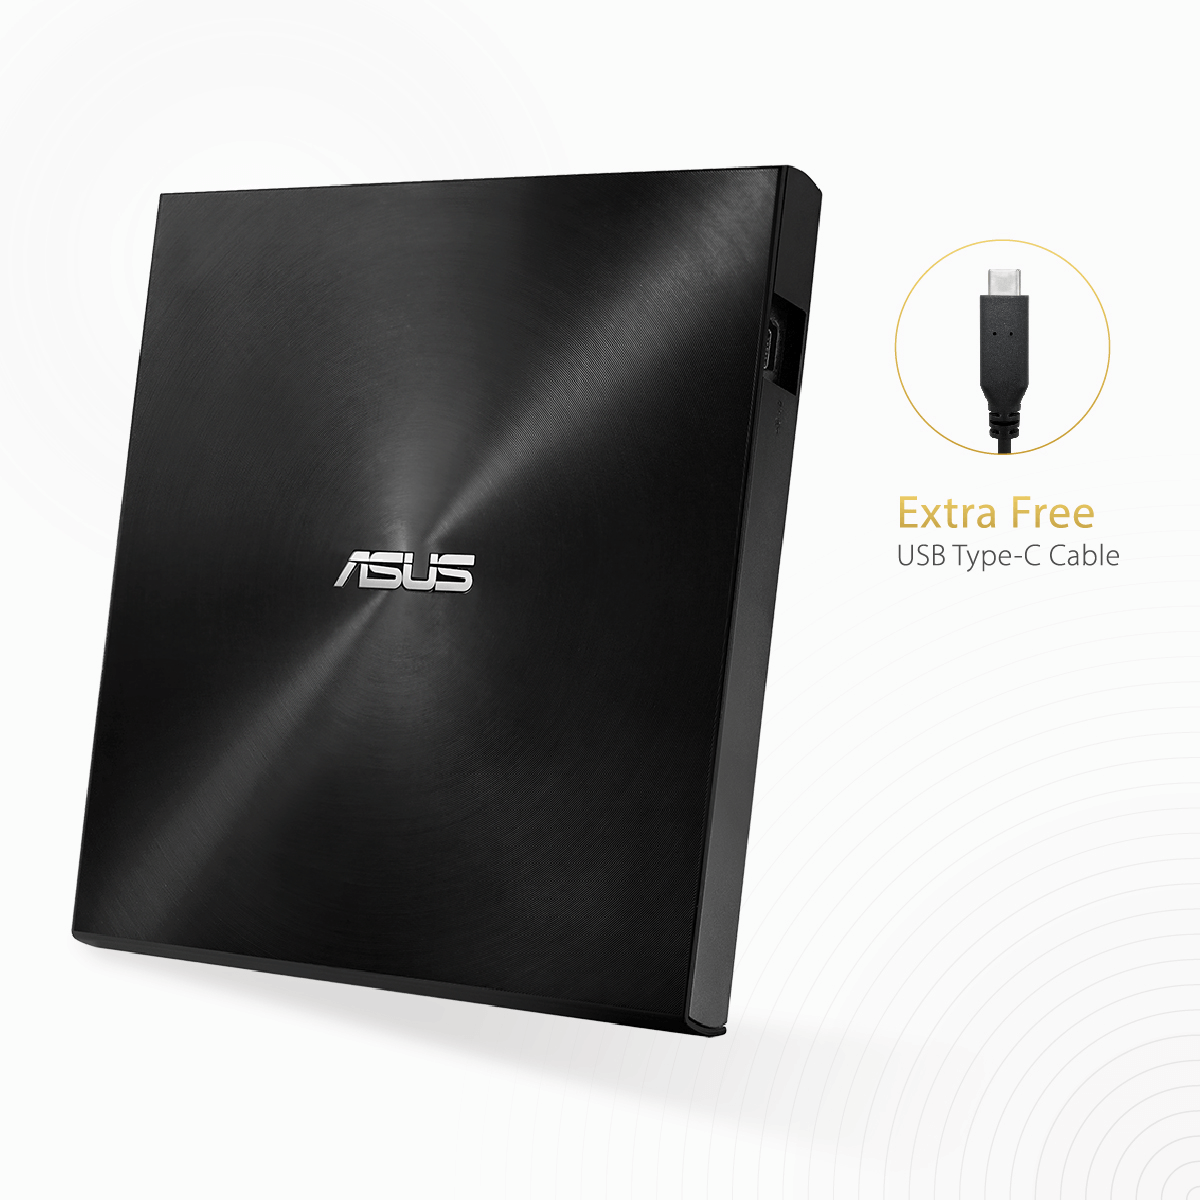 ASUS ZenDrive U9M External DVD Writer (Black)